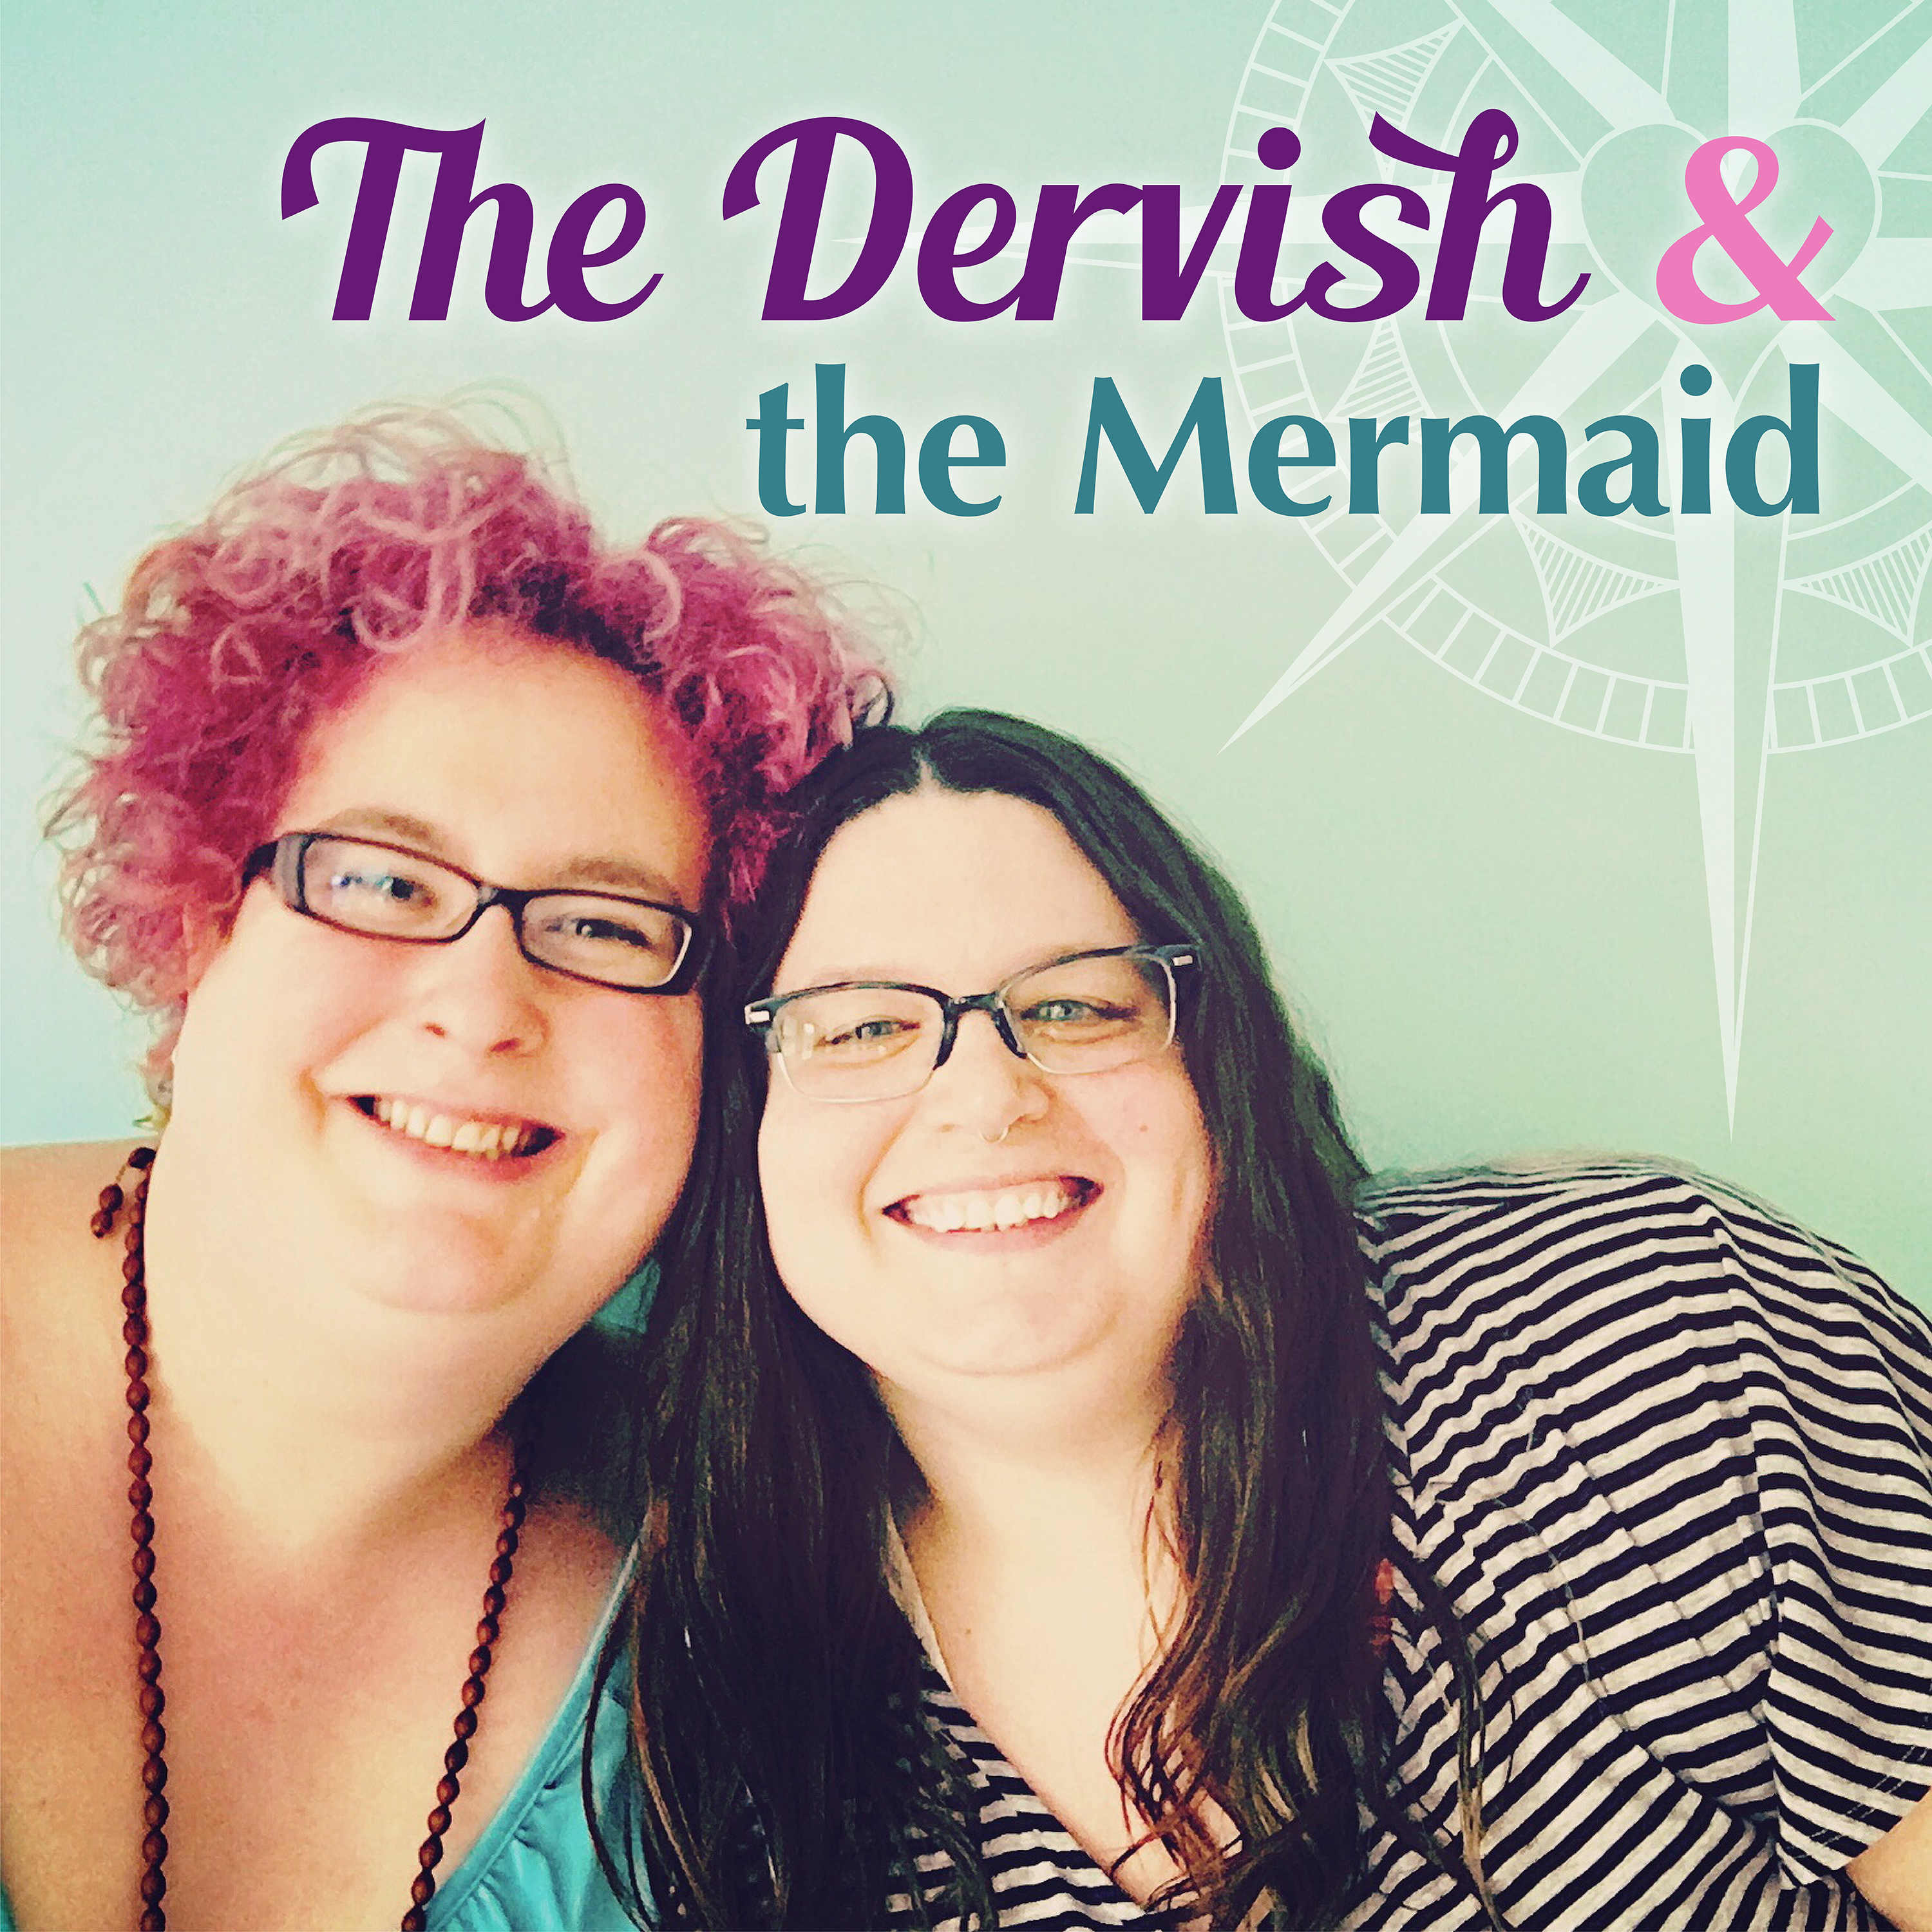 The Dervish and the Mermaid